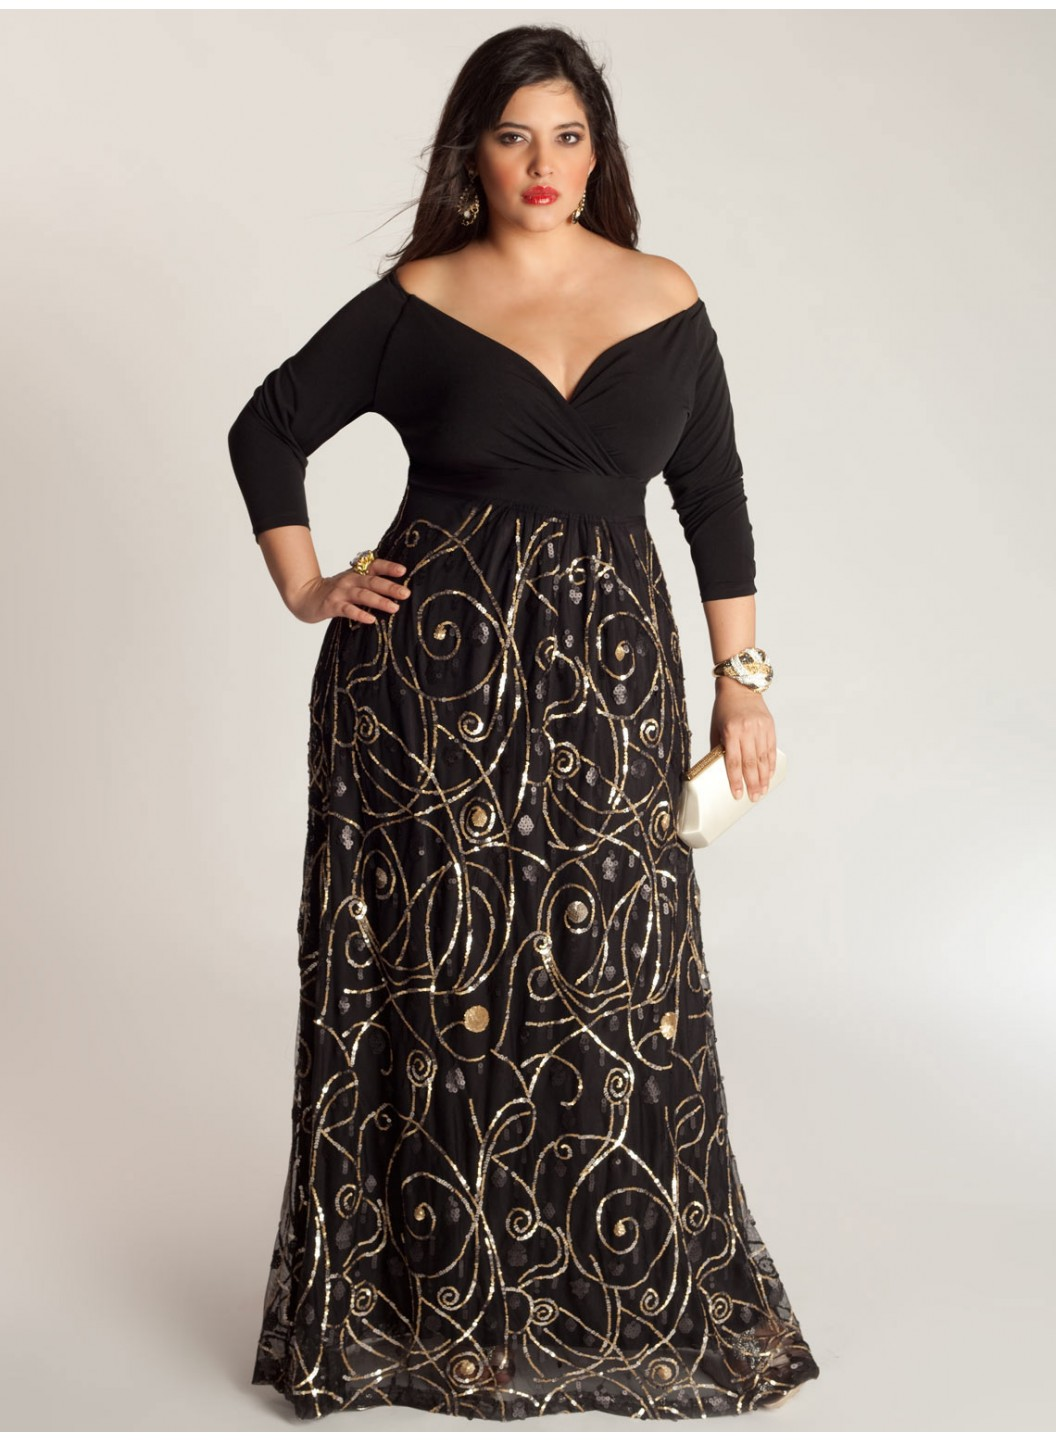 Best Evening Wear Tops Plus Size Images - Mikejaninesmith.us ...